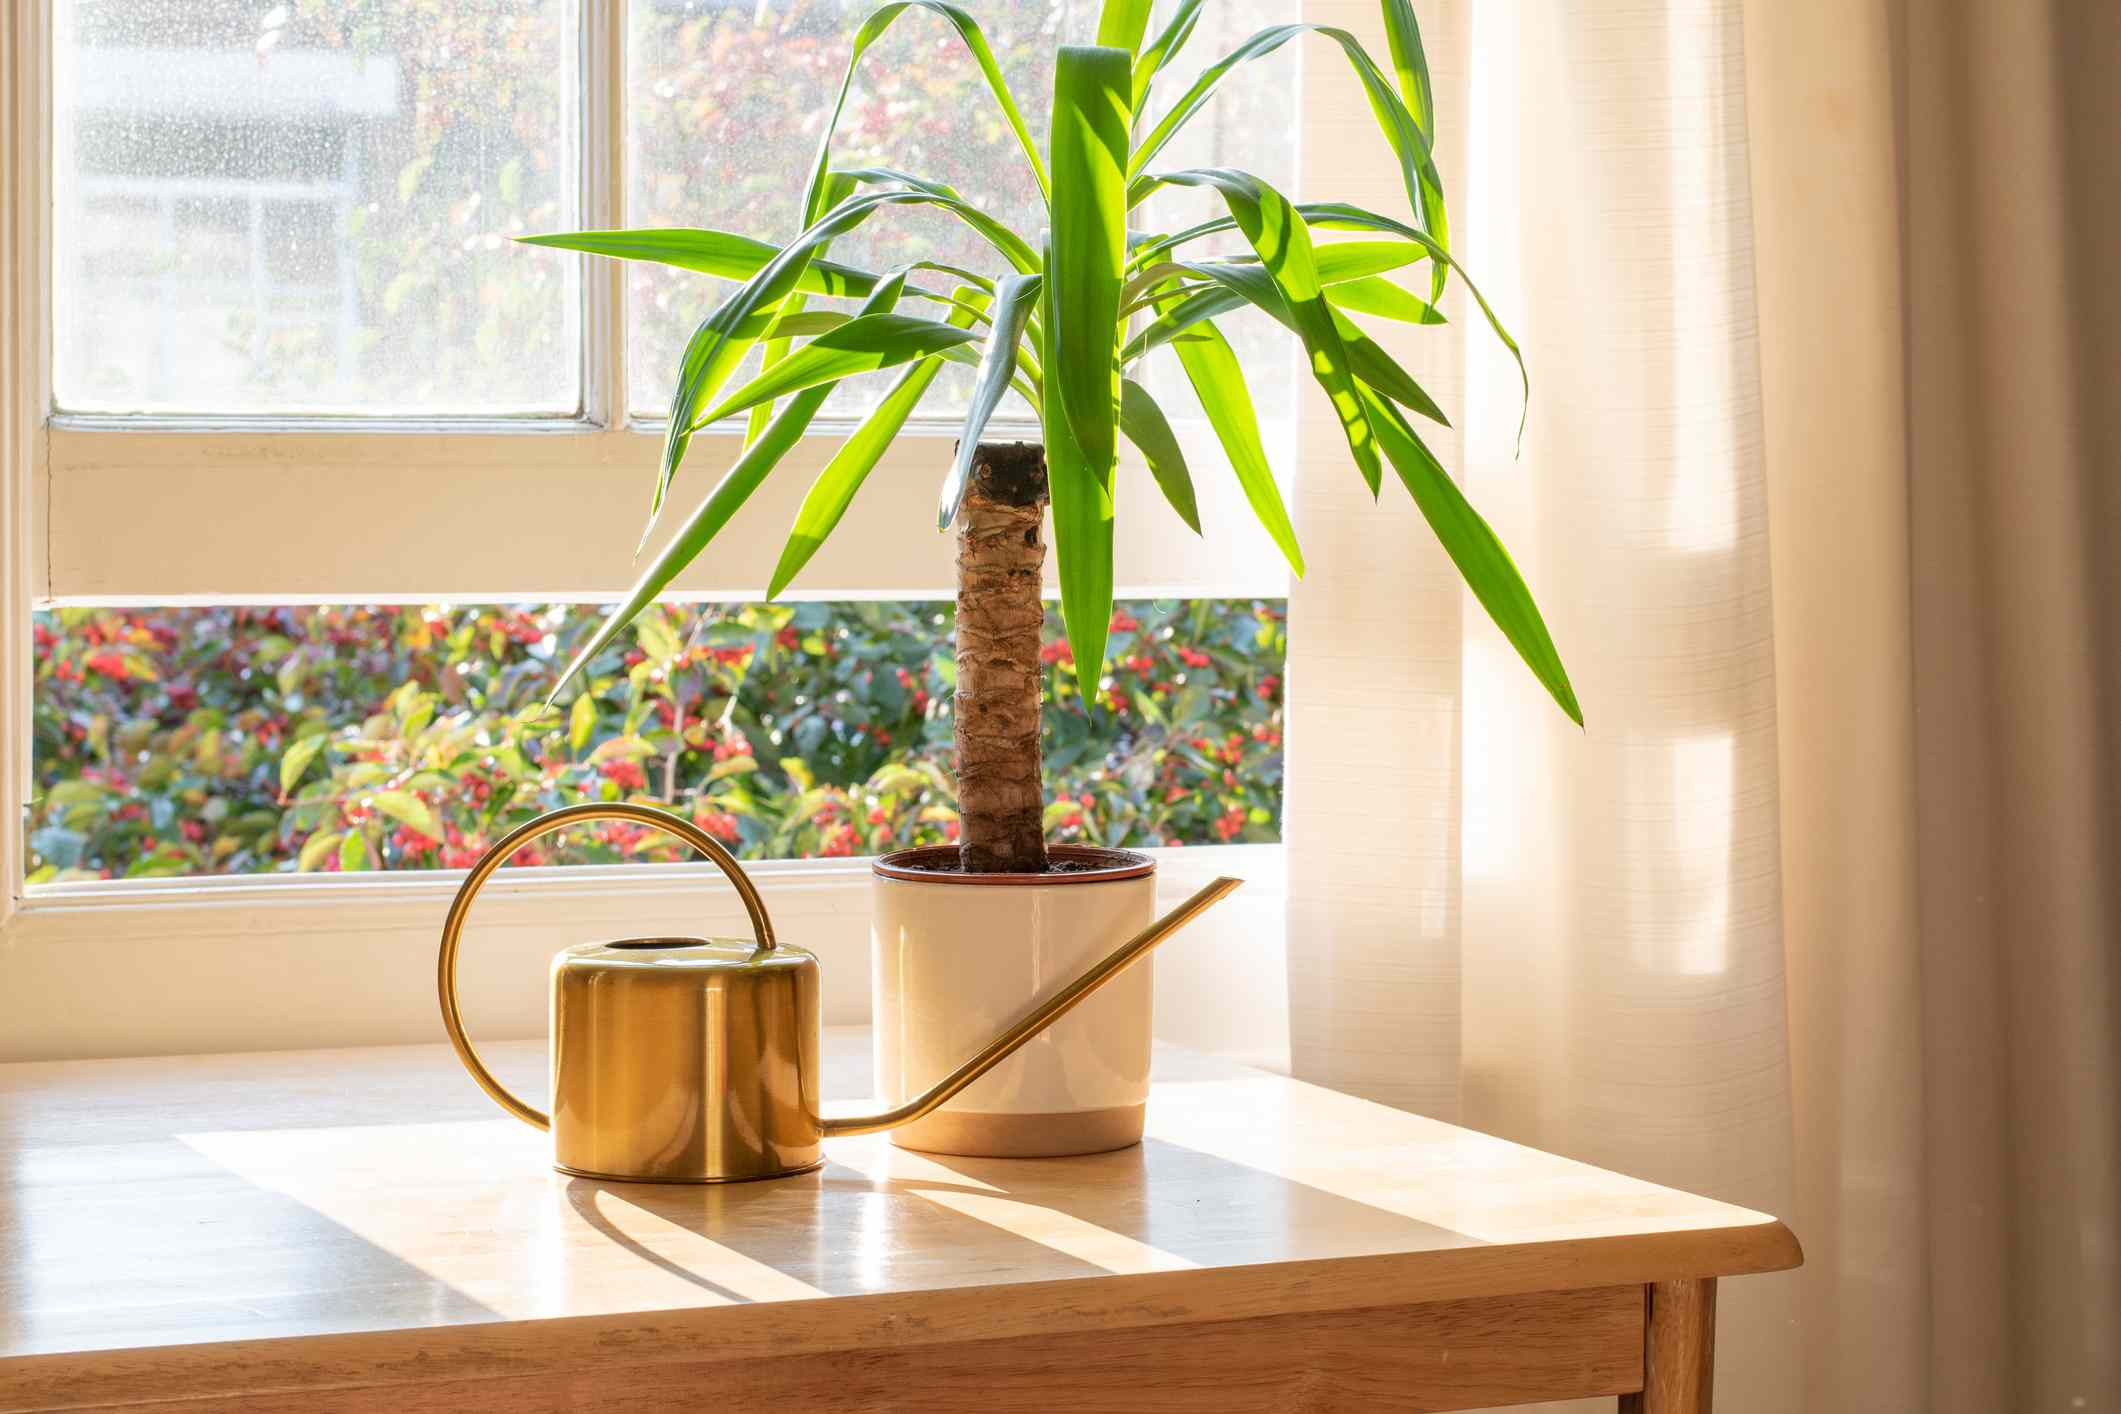 Yucca plant in a sunny window next to a gold watering can.